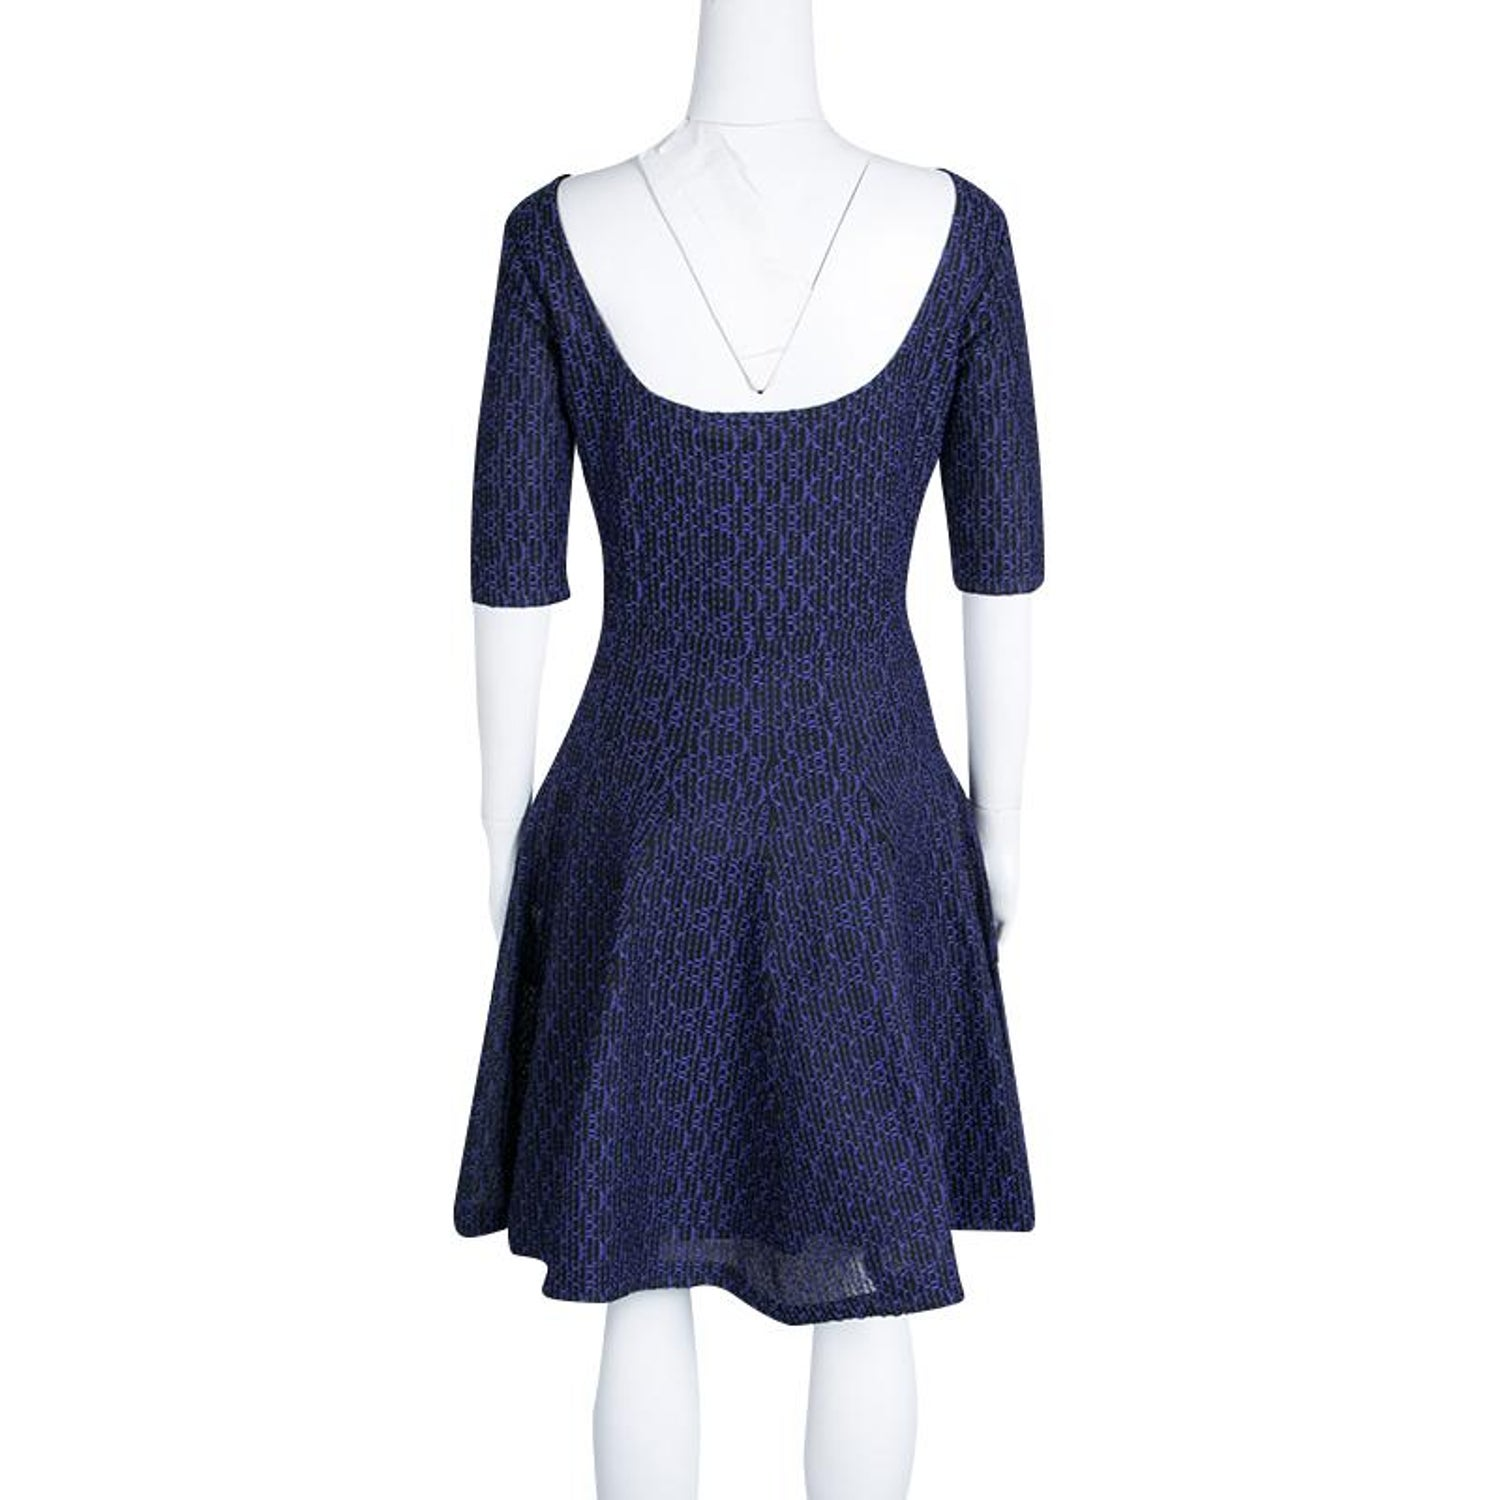 9ba02cfe6c6 Dior Purple and Black Textured Knit Fit and Flare Dress L For Sale at  1stdibs